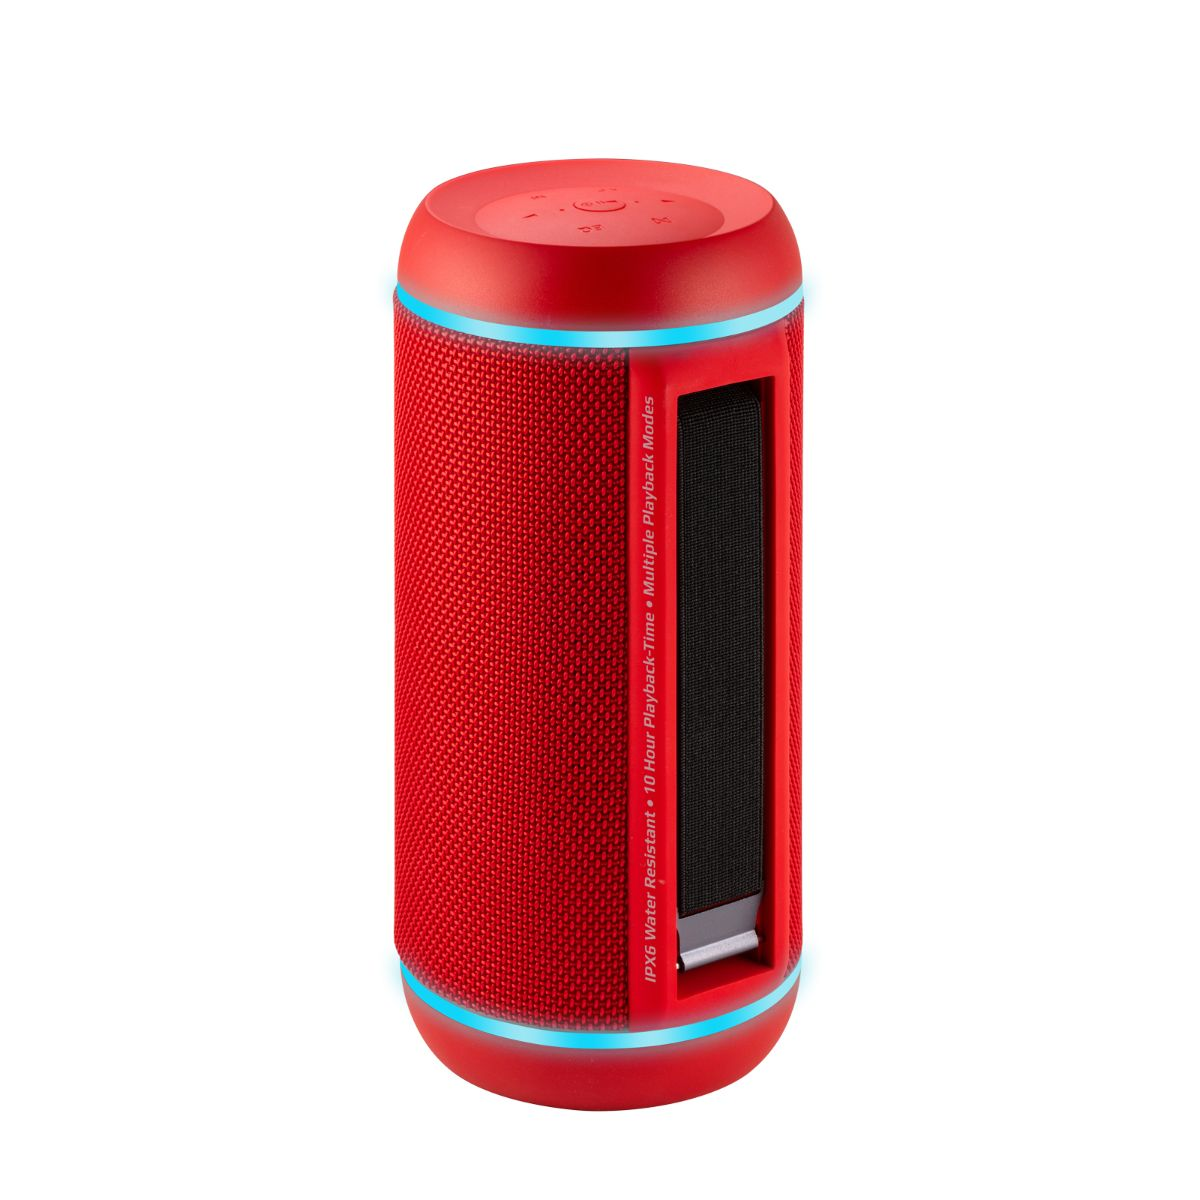 Promate True Wireless Speaker, Water-Resistant IPX6 Portable Indoor/Outdoor 30W Wireless Stereo with USB Port  & Built-In 6600mAh Power bank - Red